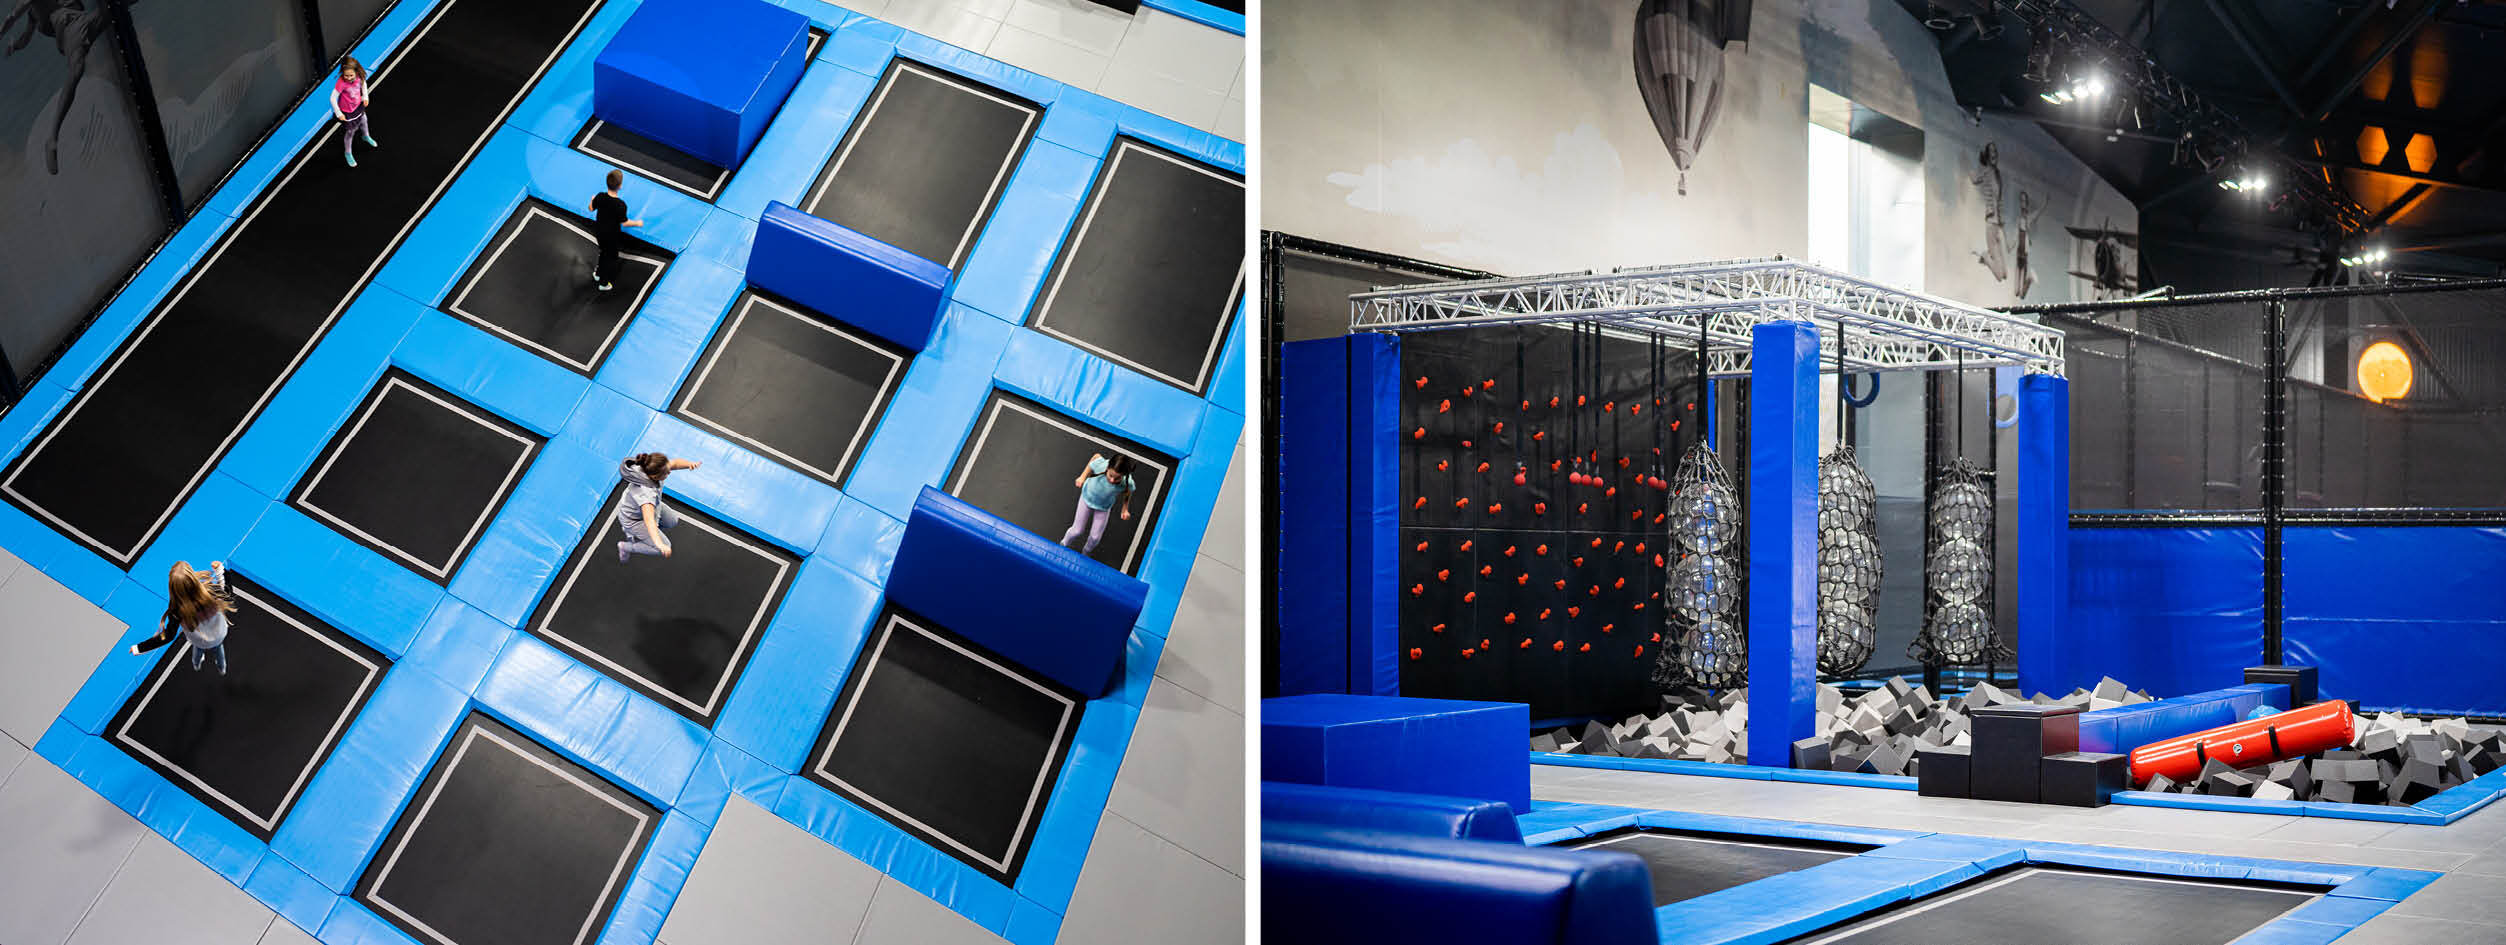 Trampoline park Jumping Dome